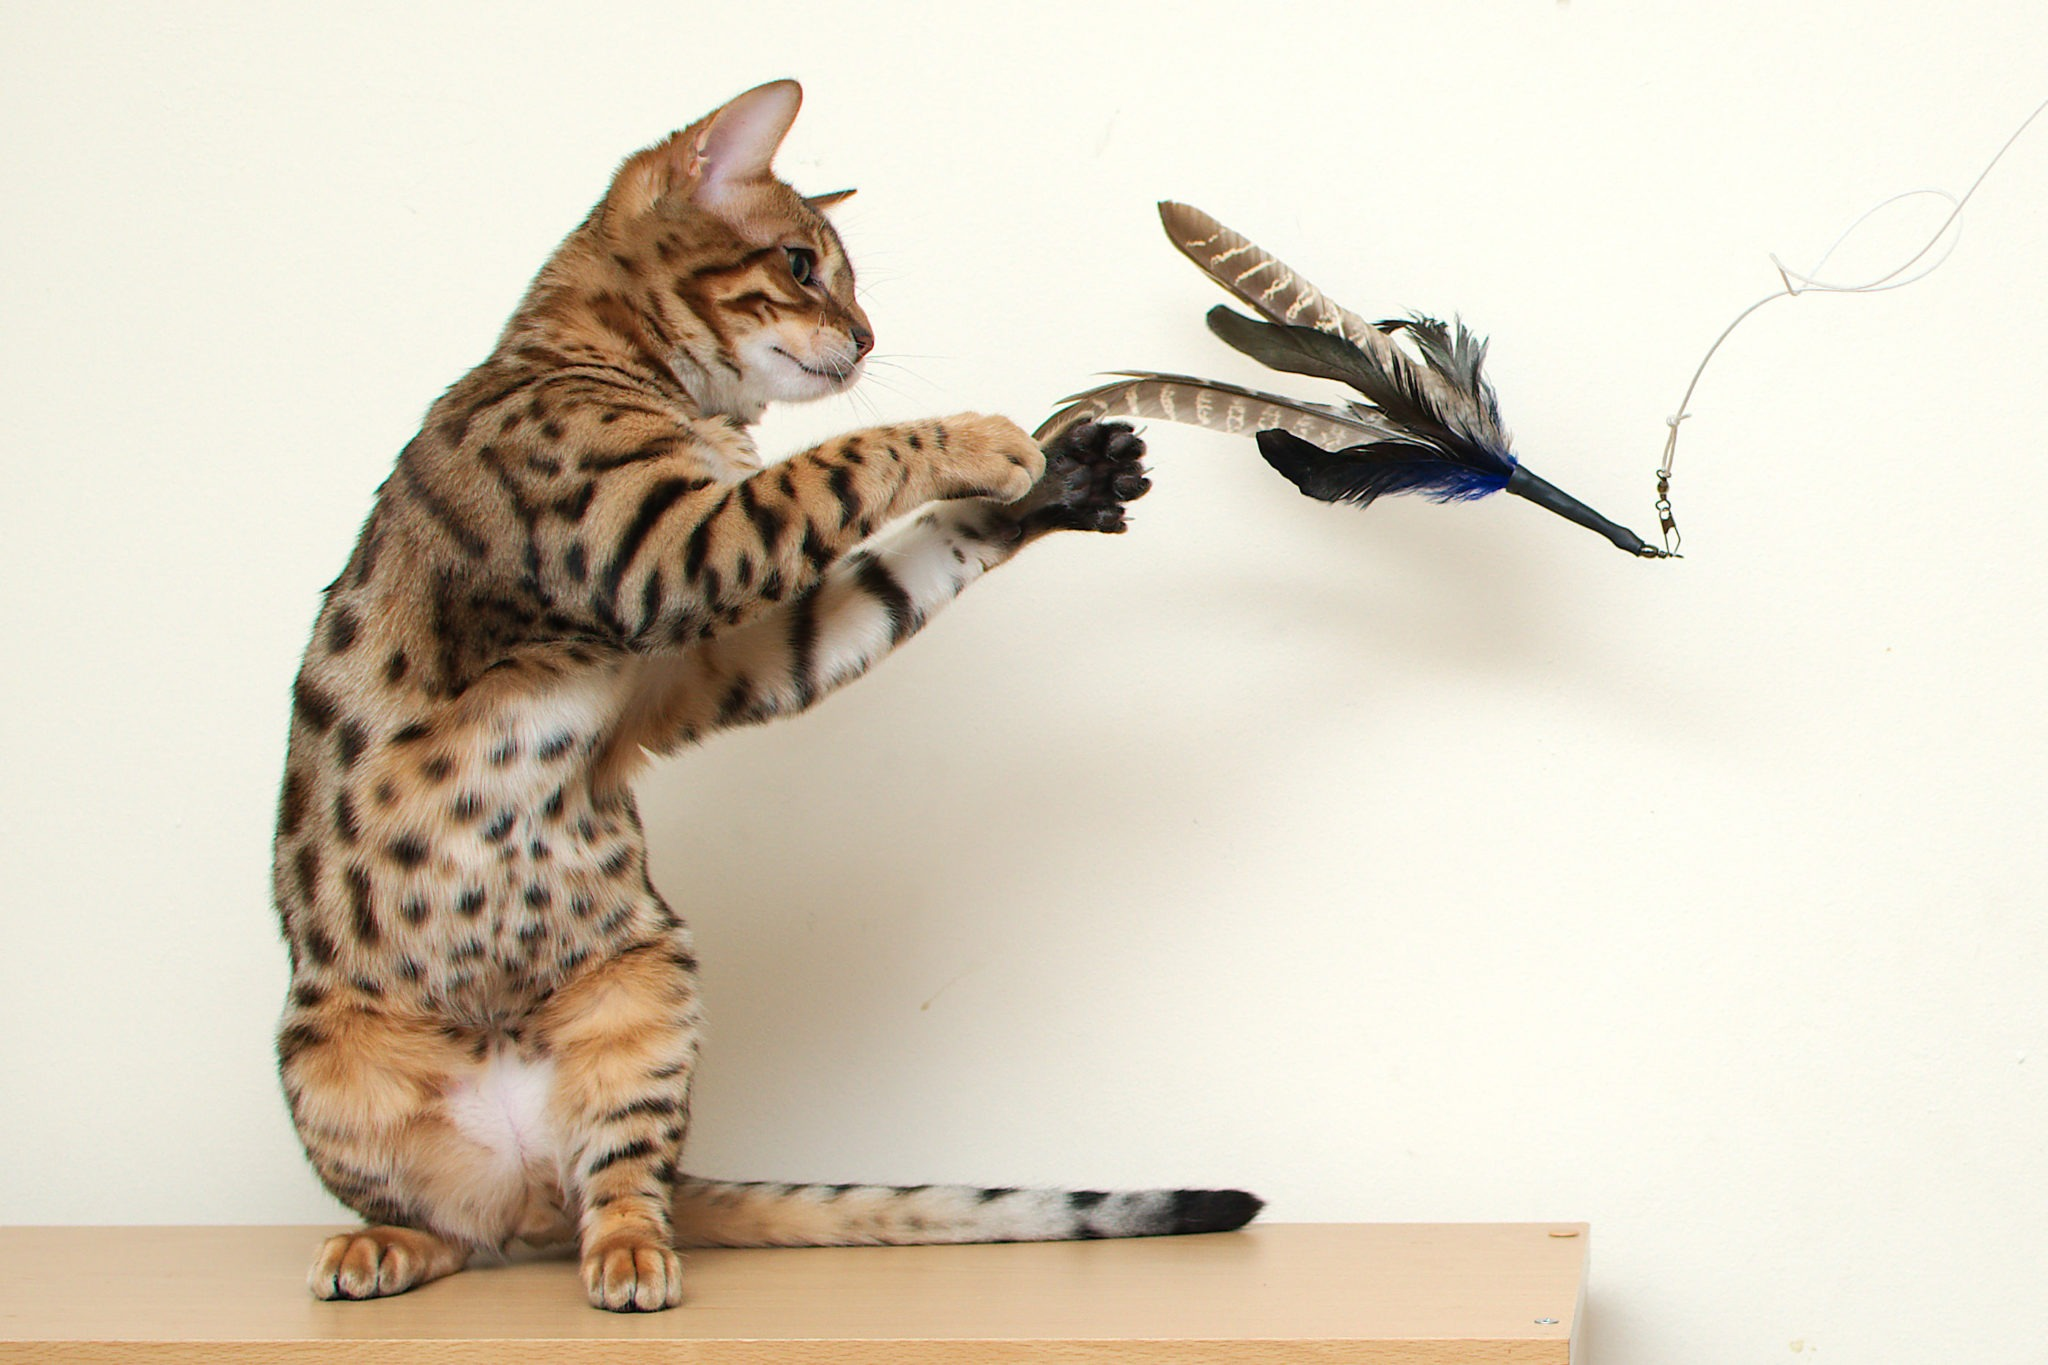 Animals___Cats__Young_Bengal_cat_playing_044840_